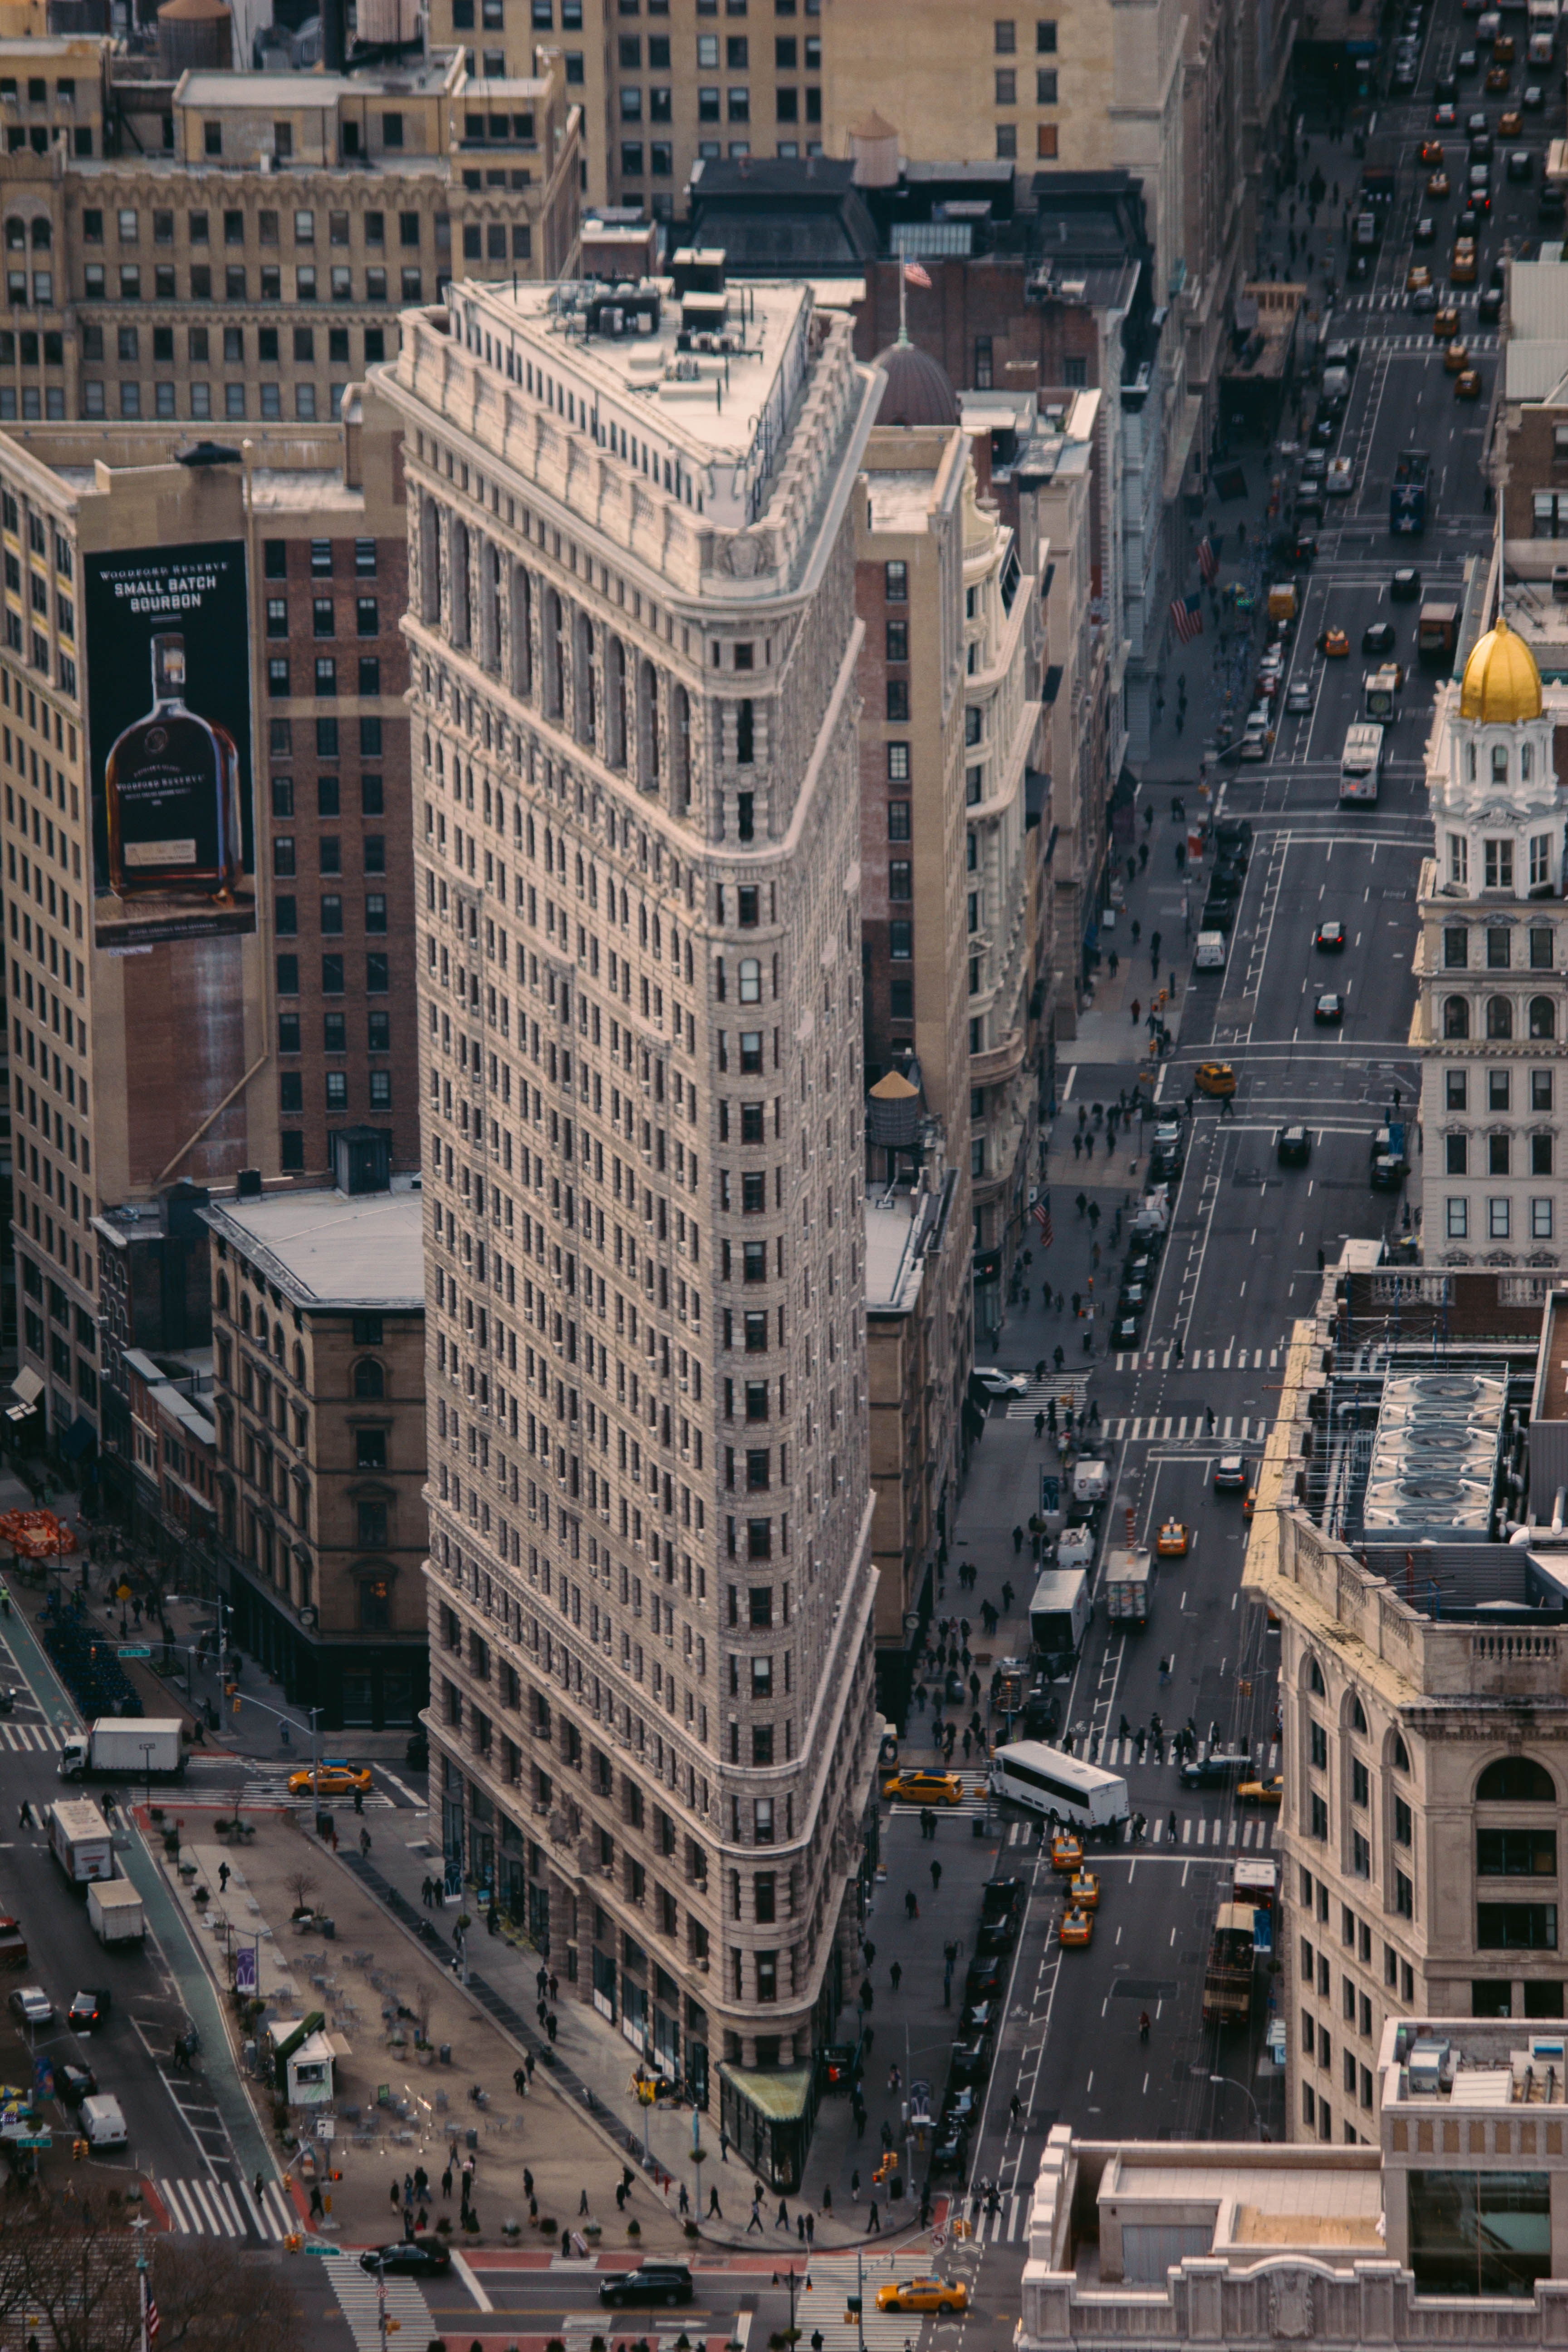 Aerial View of City, Office, Urban, Travel, Traffic, HQ Photo